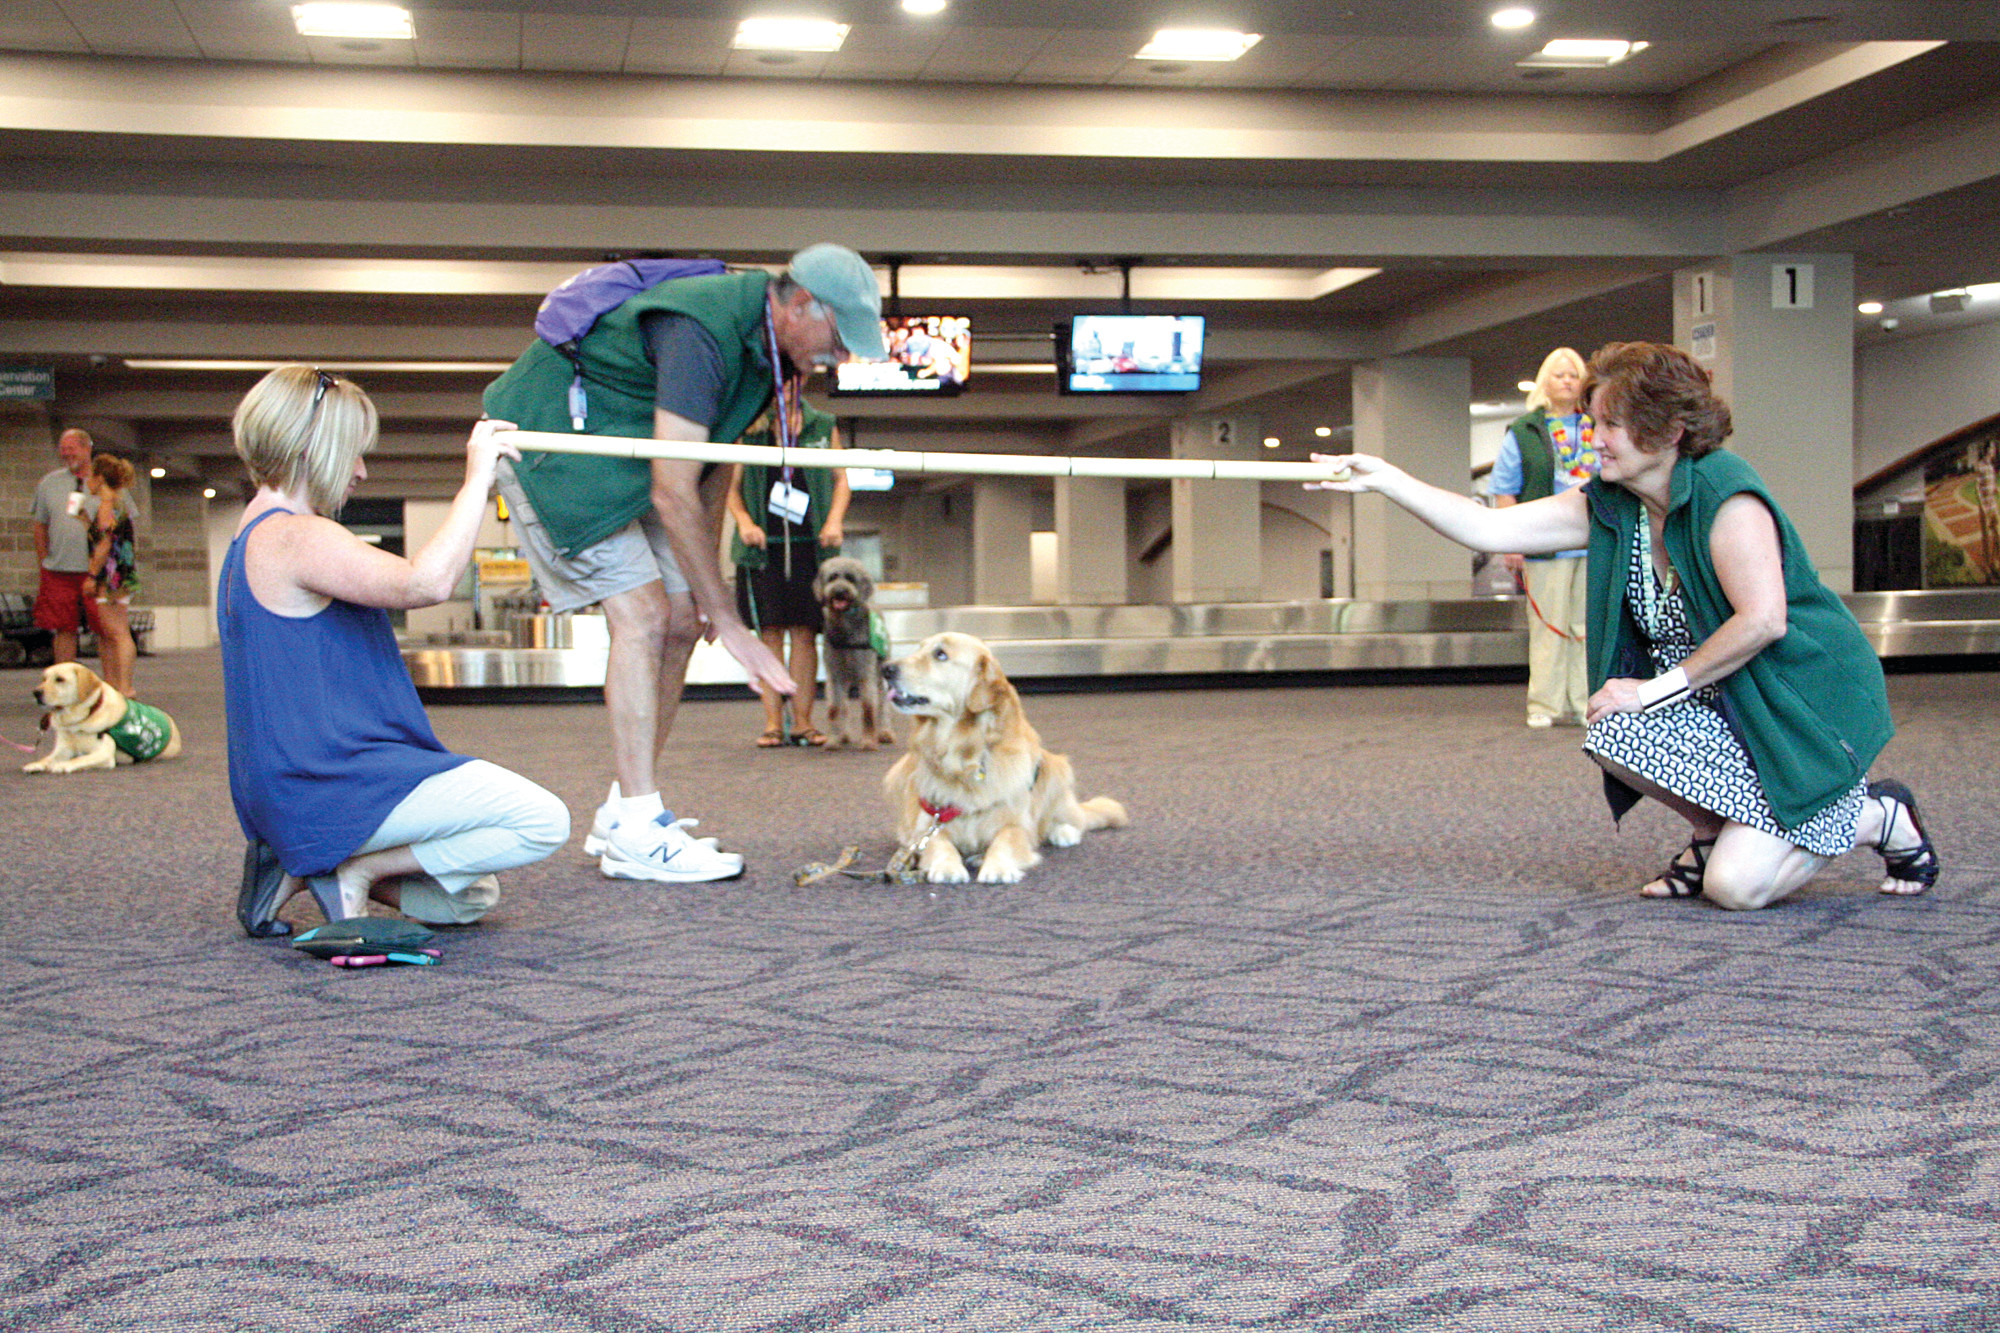 WELCOME TEAM: Green Airport visitors are reminded how pet-friendly Rhode Island is when they meet up with the volunteers from PVD Pups and their dogs. In order to qualify for the program, the dogs are required to complete extensive training that demonstrates their ability to follow commands and get along with crowds.